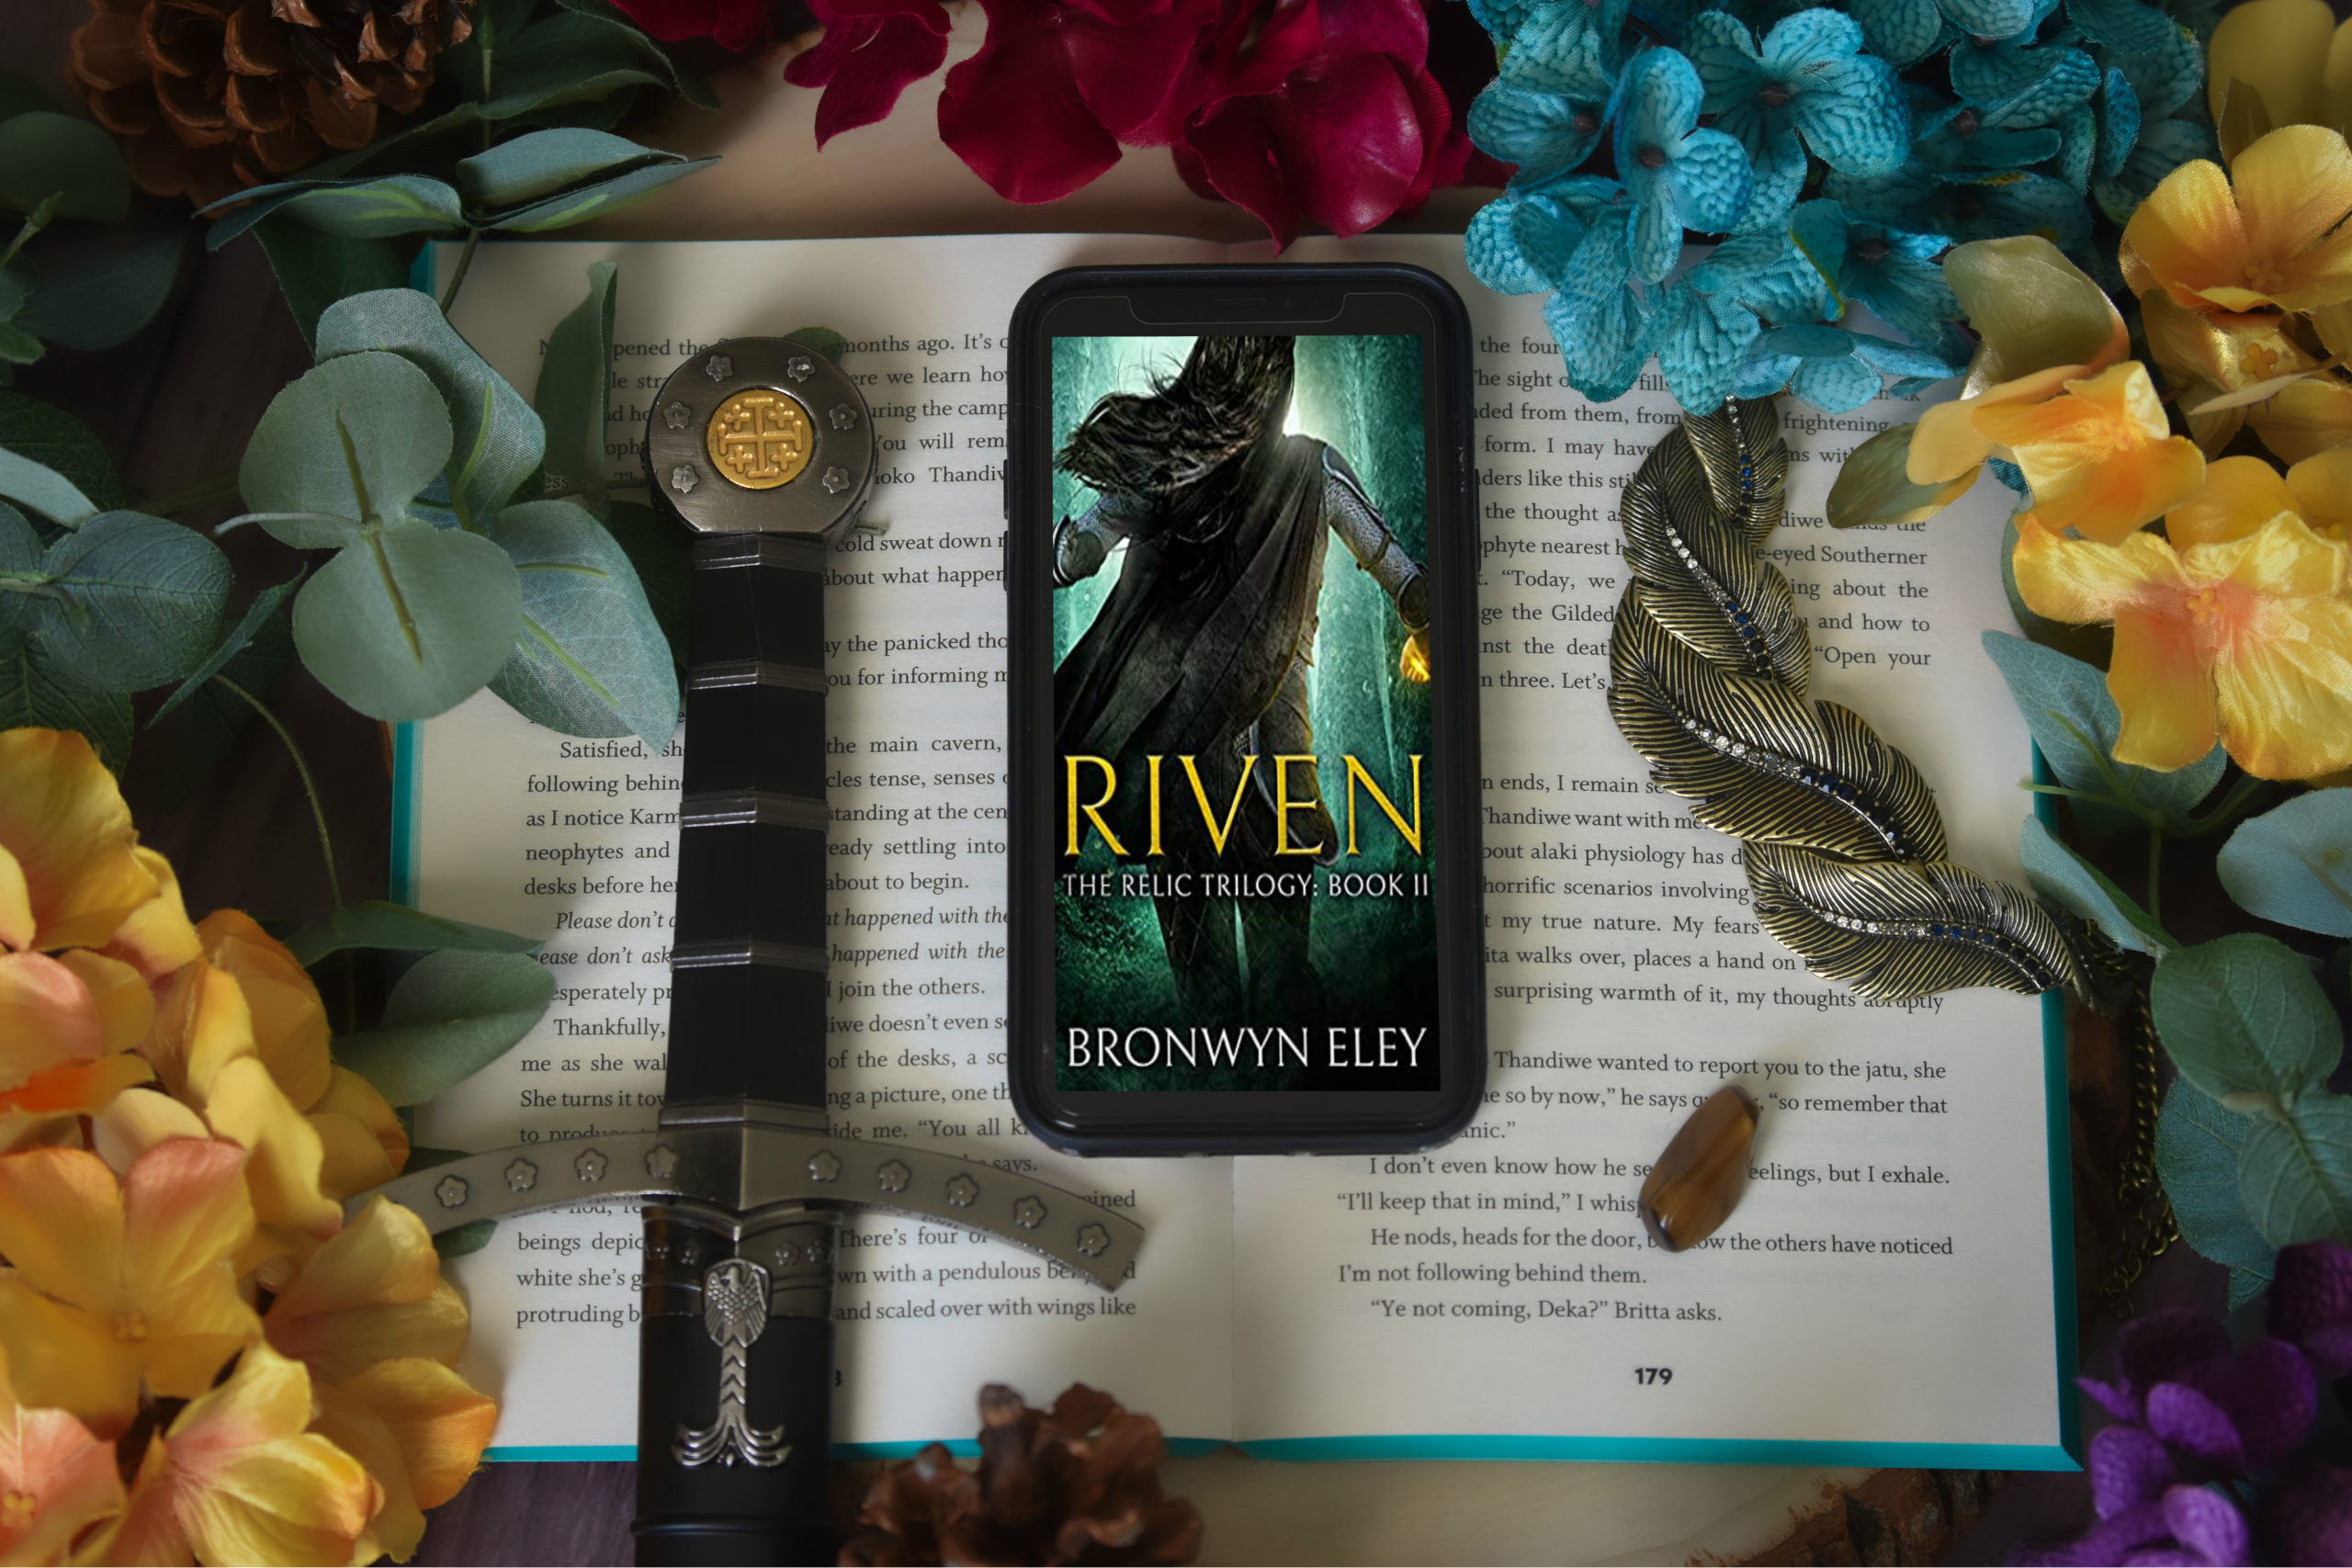 RIVEN by Bronwyn Eley   ARC Review of Book Two in The Relic Trilogy